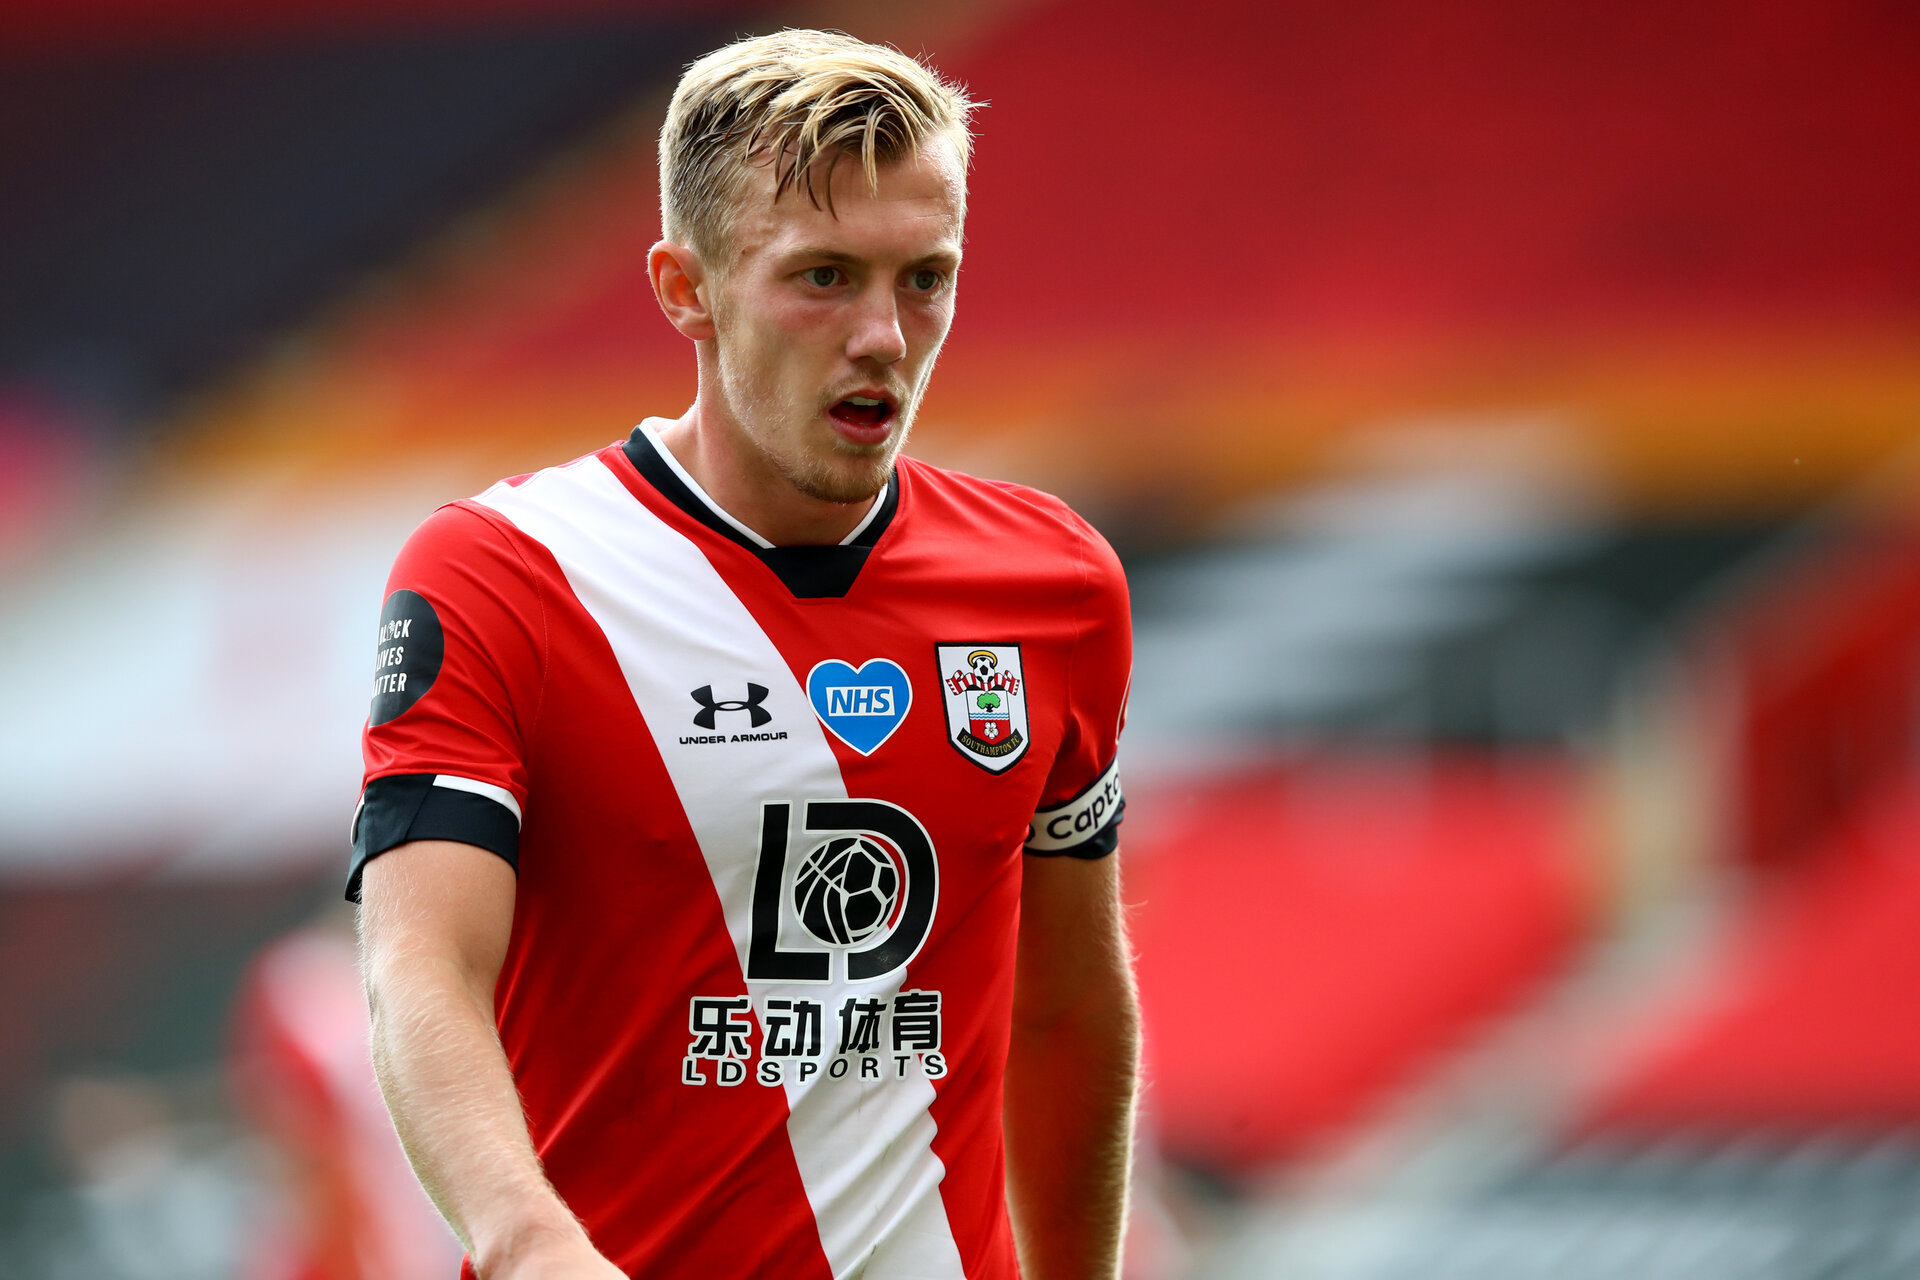 SOUTHAMPTON, ENGLAND - JULY 26: James Ward-Prowse of Southampton during the Premier League match between Southampton FC and Sheffield United at St Mary's Stadium on April 17, 2020 in Southampton, United Kingdom. (Photo by Matt Watson/Southampton FC via Getty Images)